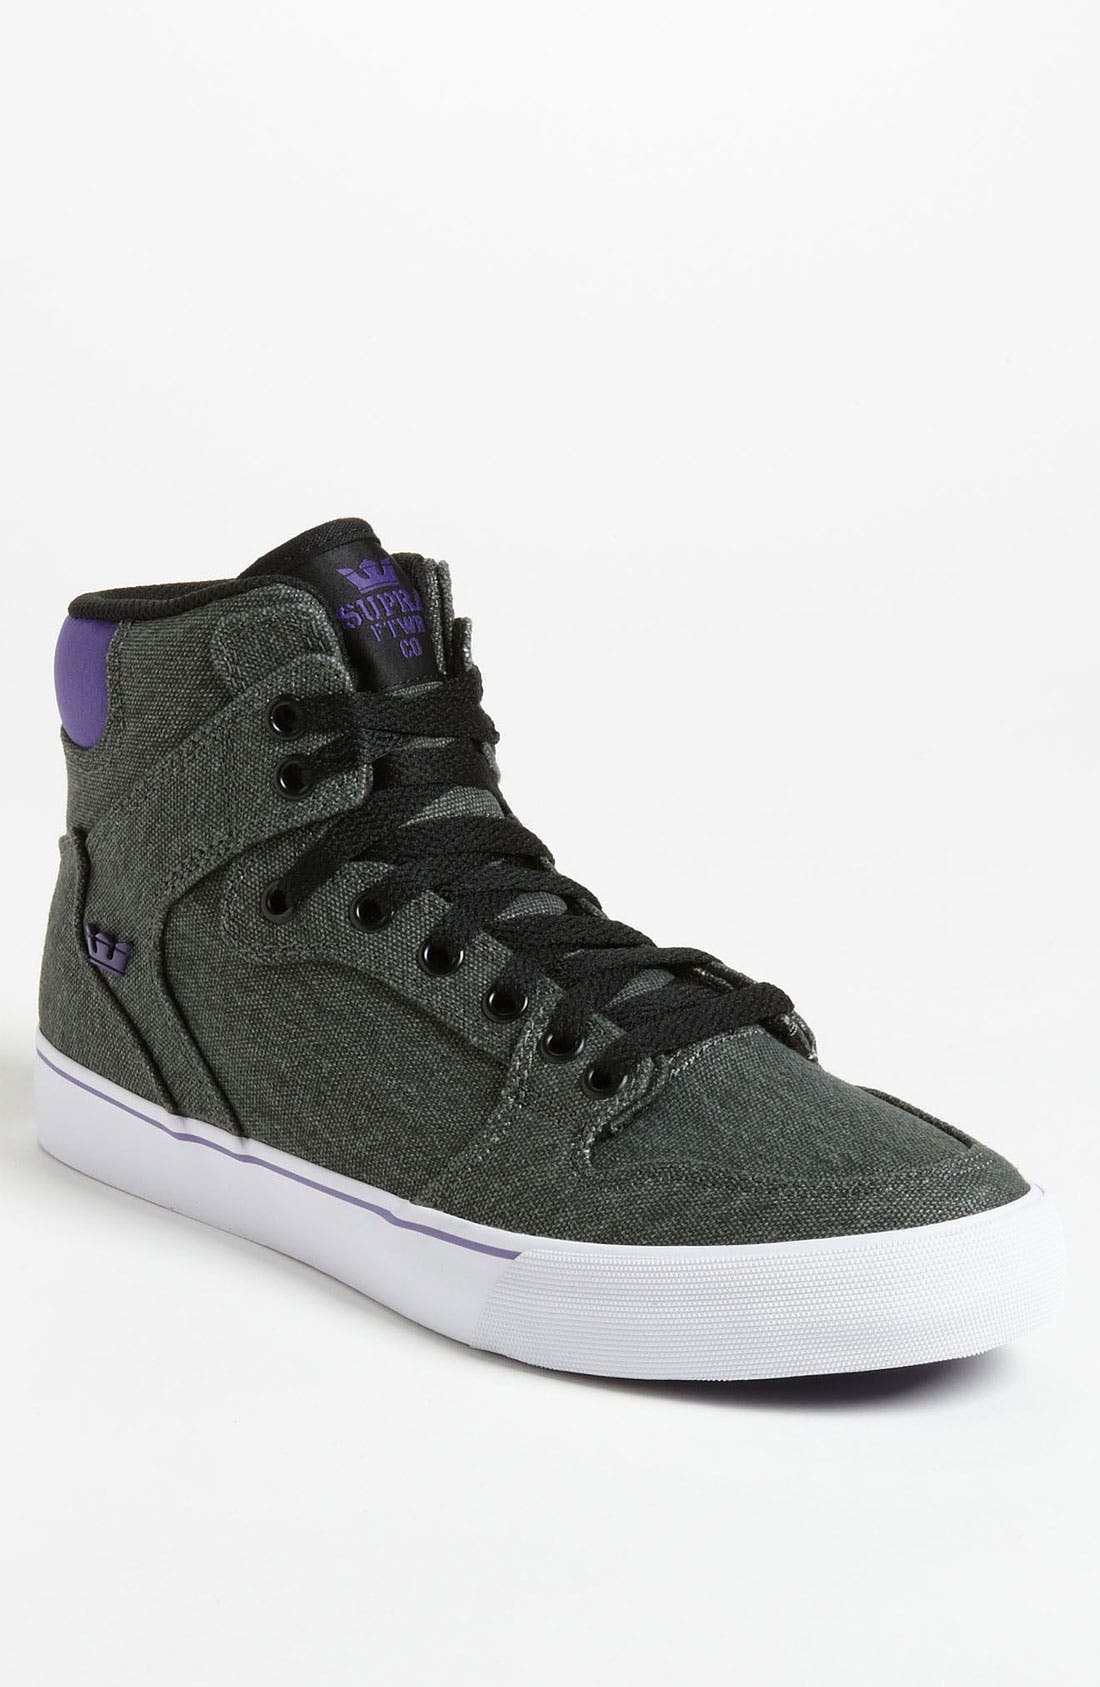 Alternate Image 1 Selected - Supra 'Vaider' Sneaker (Men)